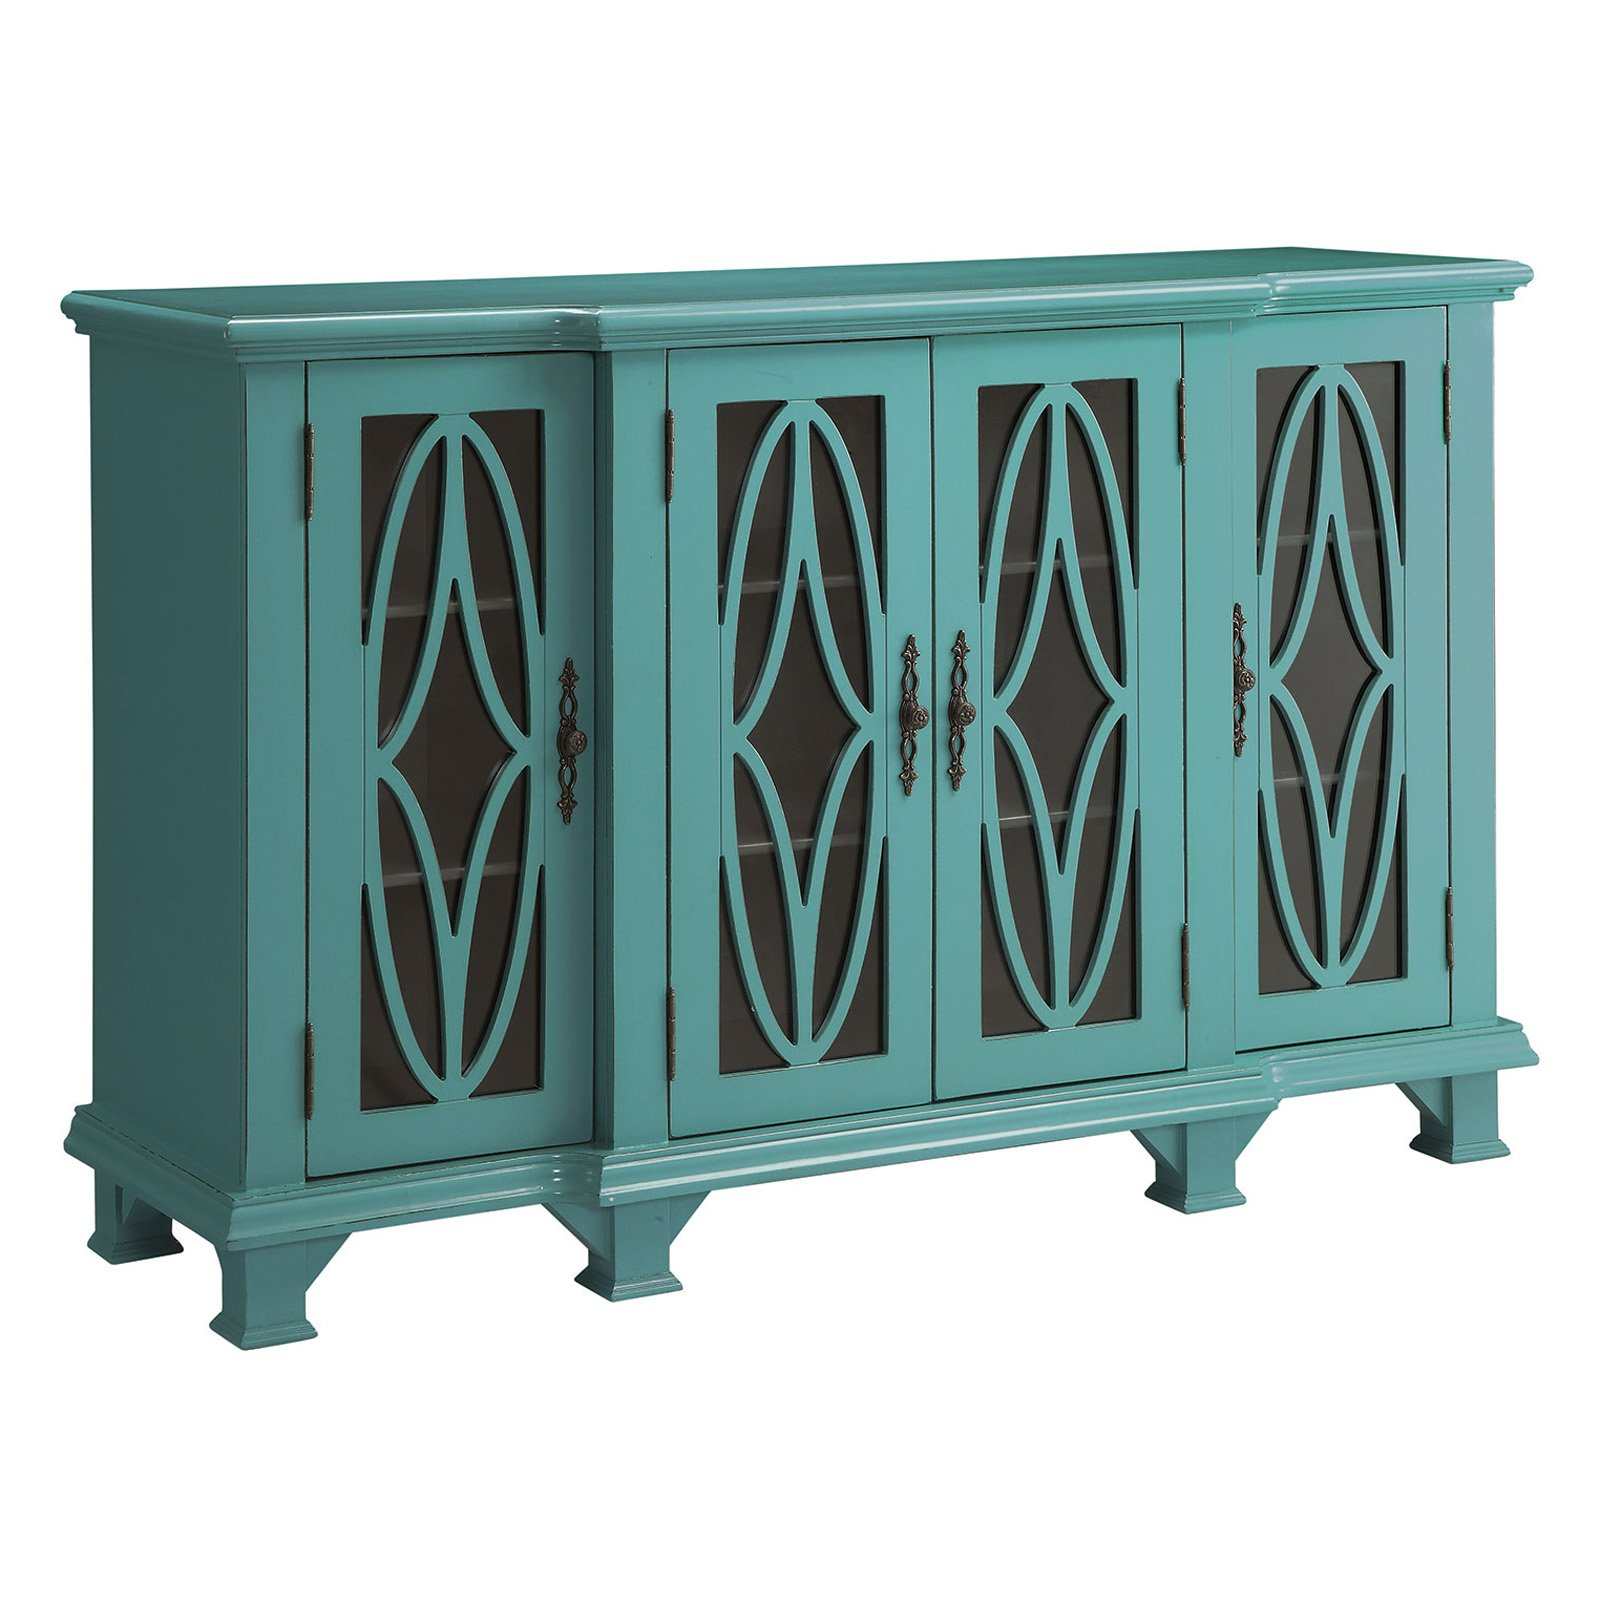 coaster company teal blue accent cabinet table diy patio umbrella stand clearance dining room chairs ikea storage bronze glass coffee counter height bar laminated tablecloth inch